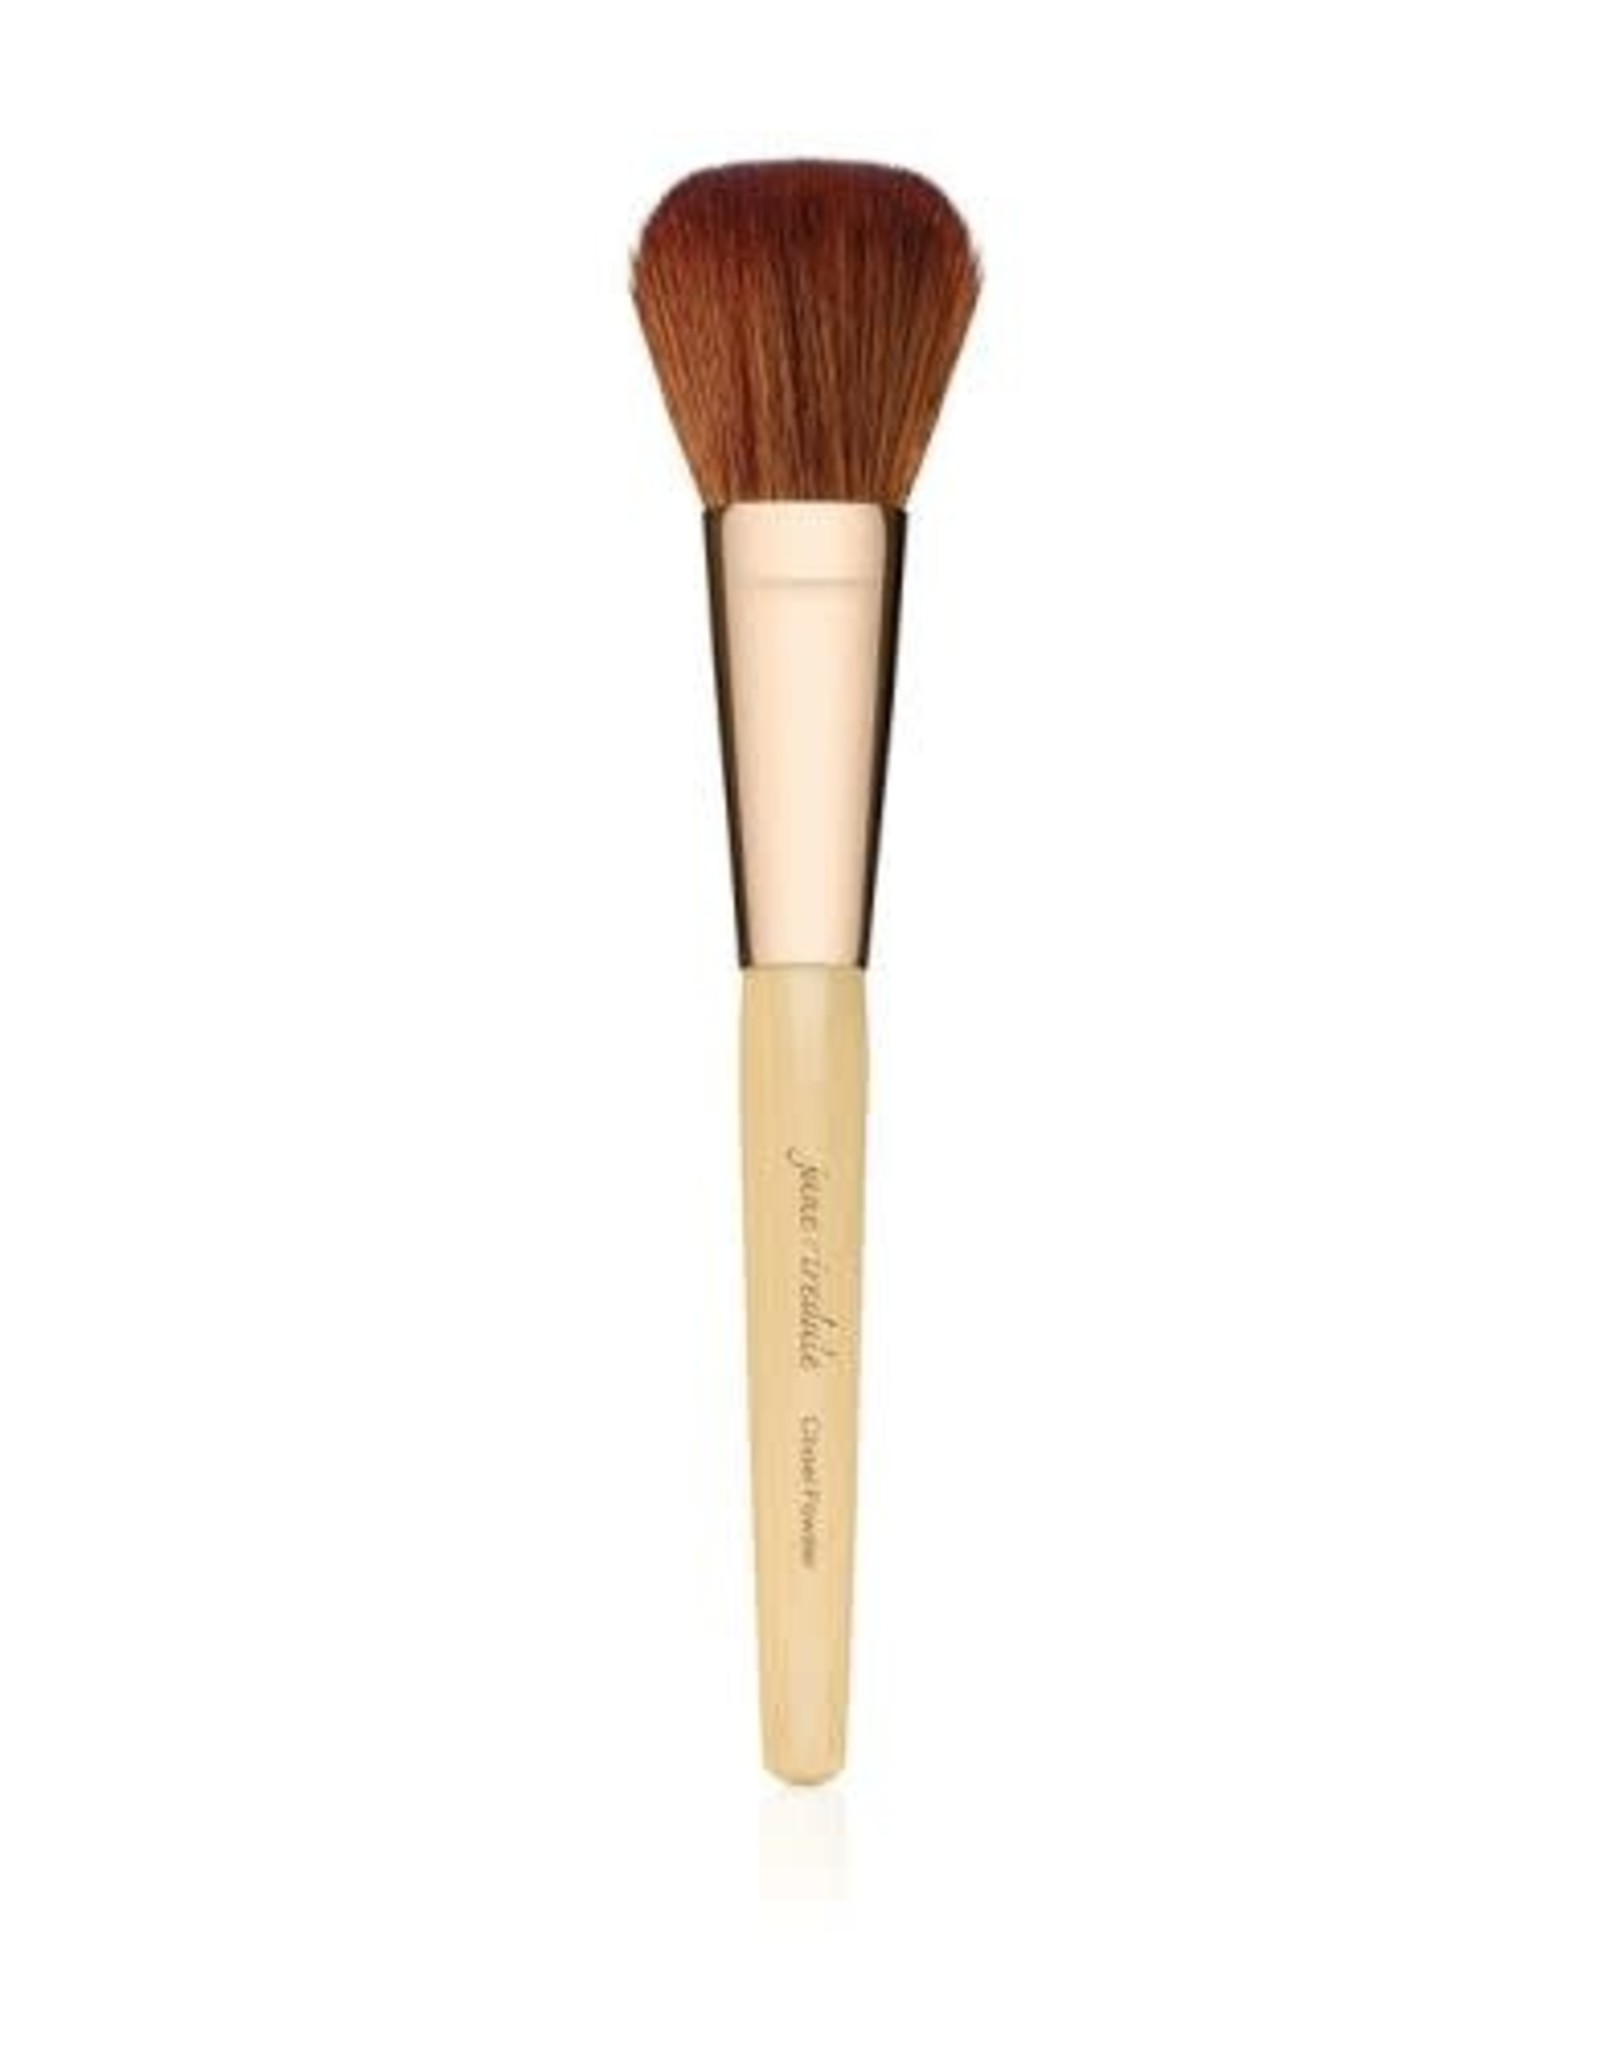 Jane Iredale Makeup Brush | Chisel Powder